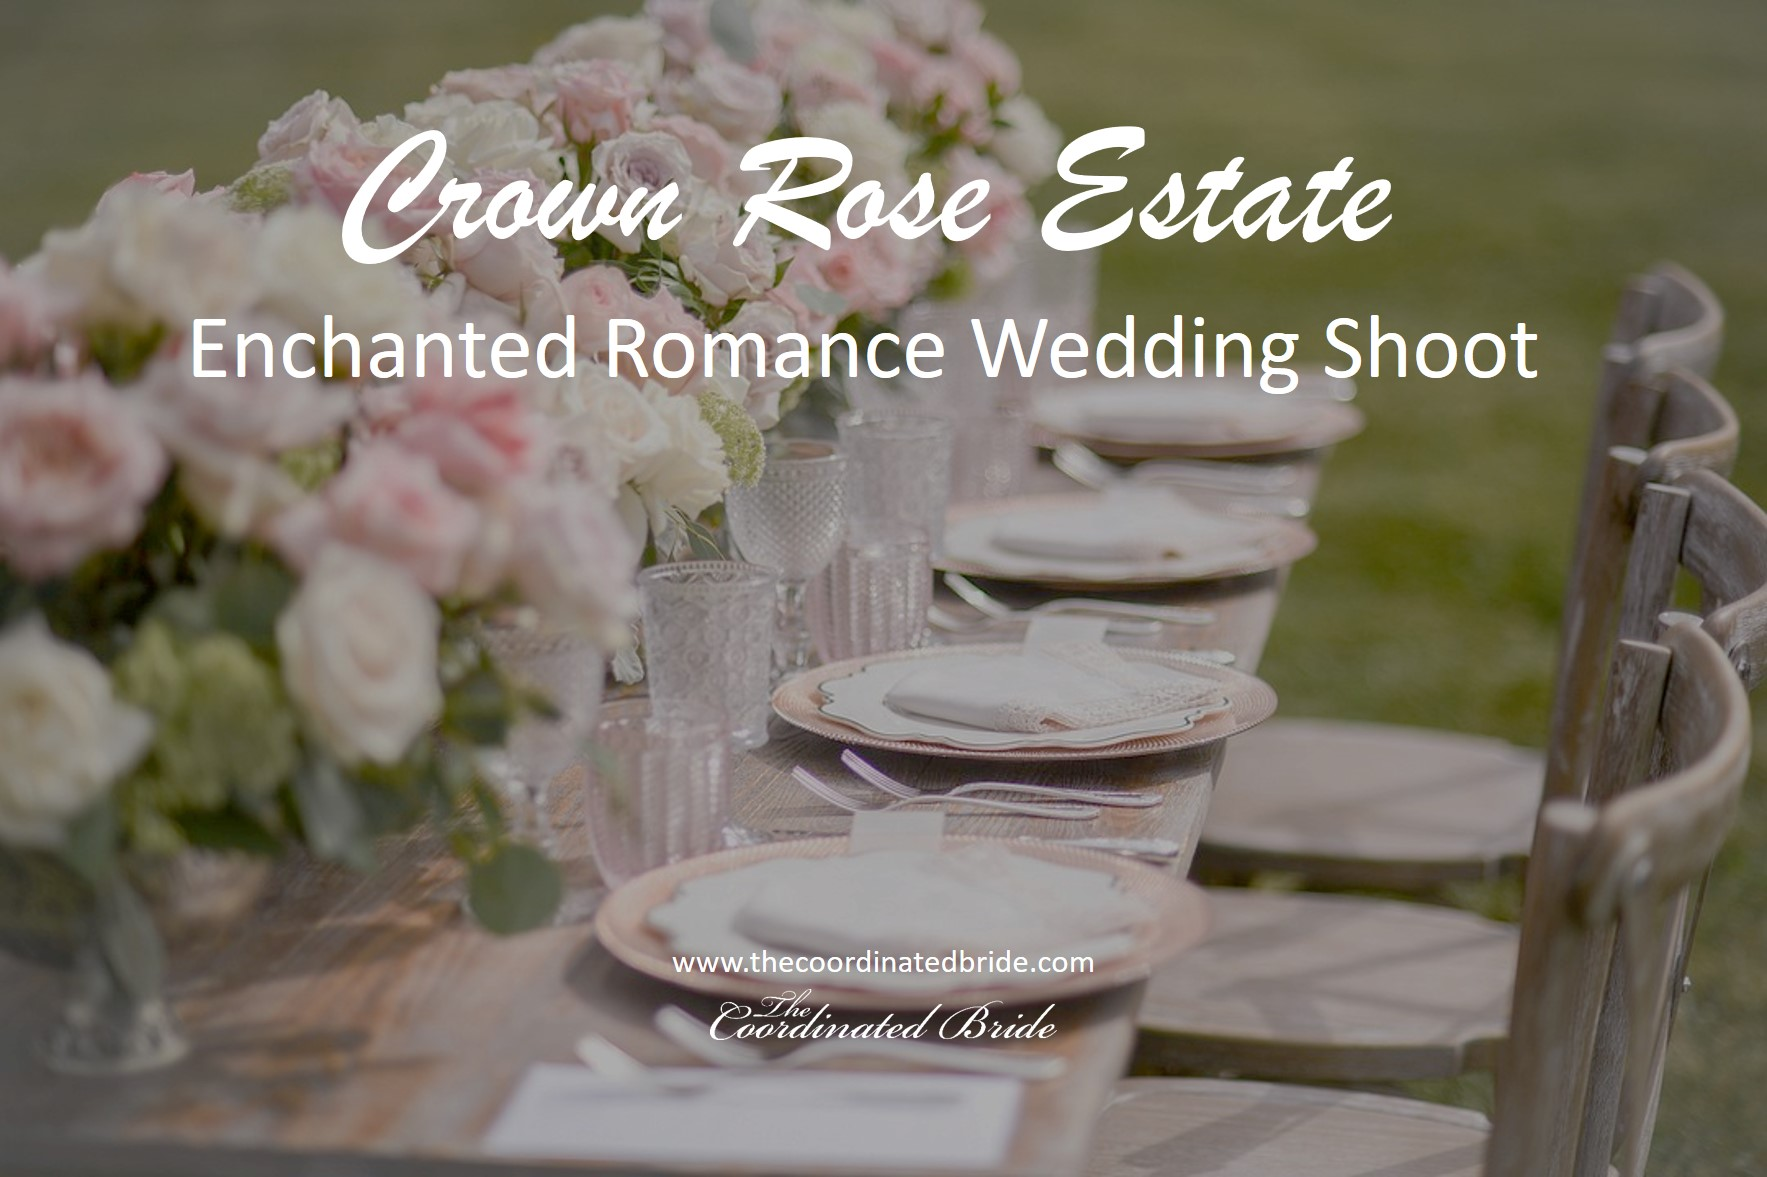 Enchanted Romance at Crown Rose Estate in Maryland